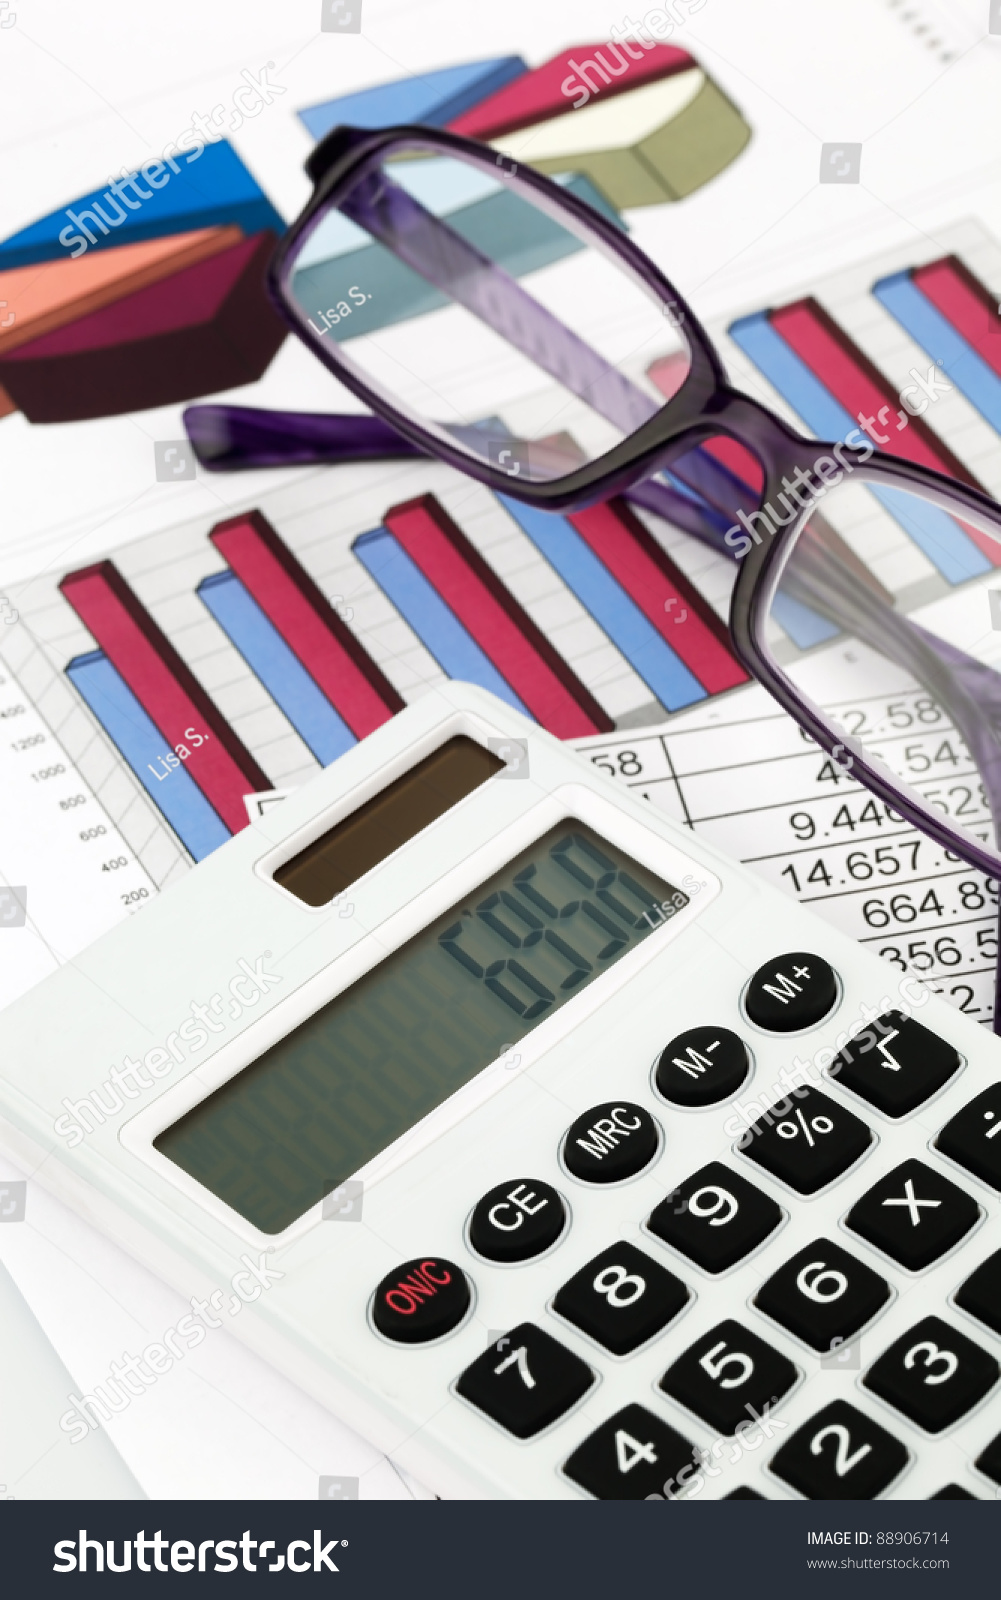 how to find calculate revenue